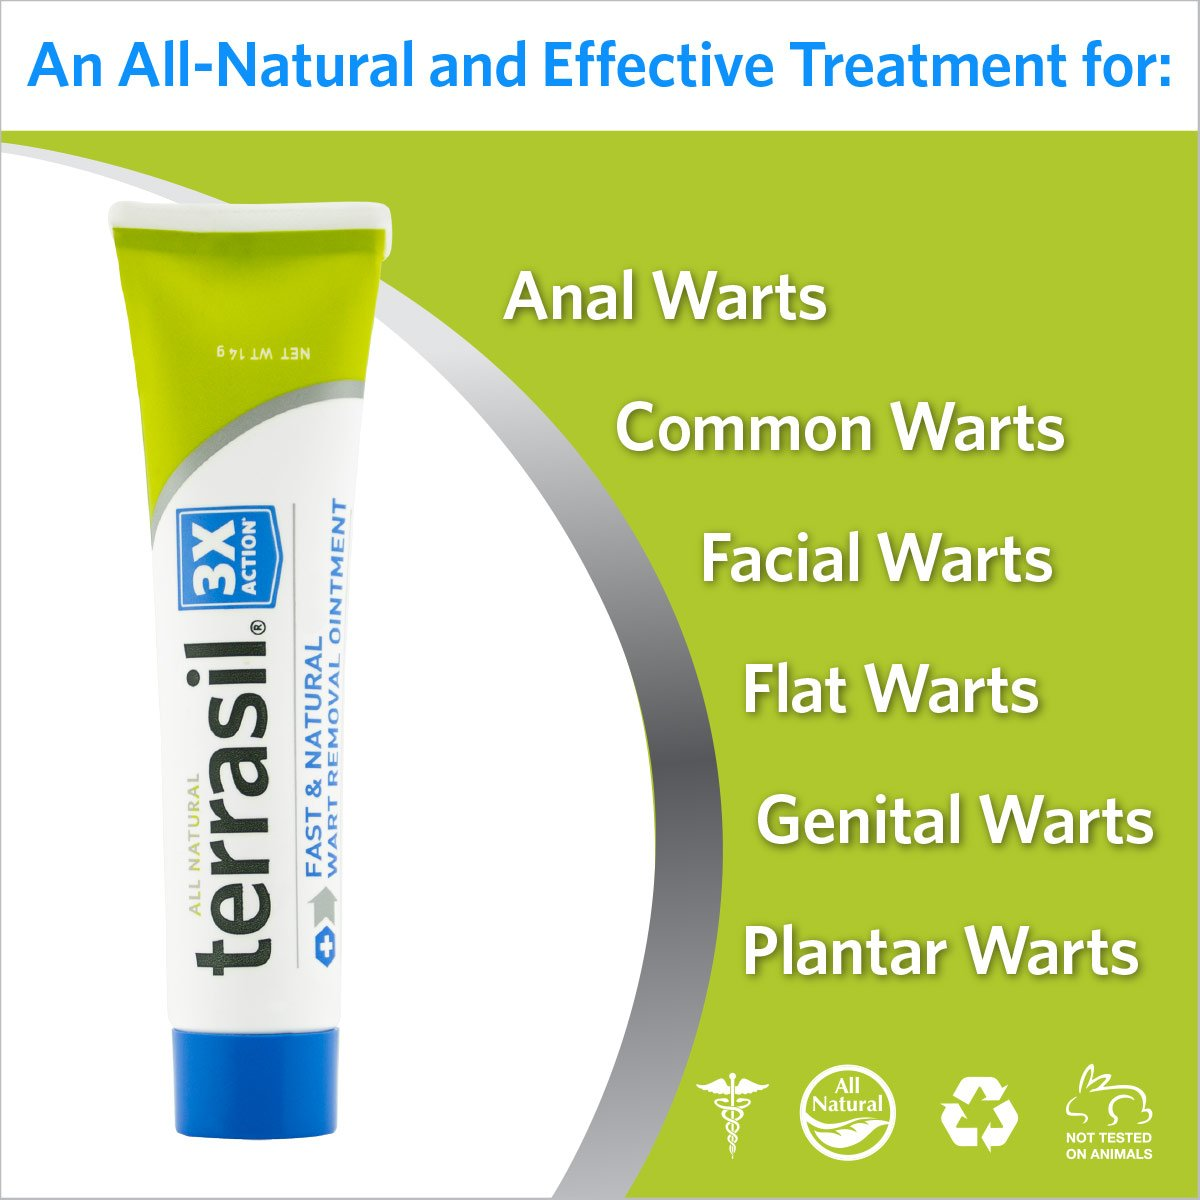 Wart Remover - Safe for Sensitive Skin Dr Recommended 100% Guaranteed All Natural Pain Free Salicylic Acid Free Patented Treatment for Plantar Genital Facial Warts by Terrasil by Aidance Skincare & Topical Solutions (Image #2)